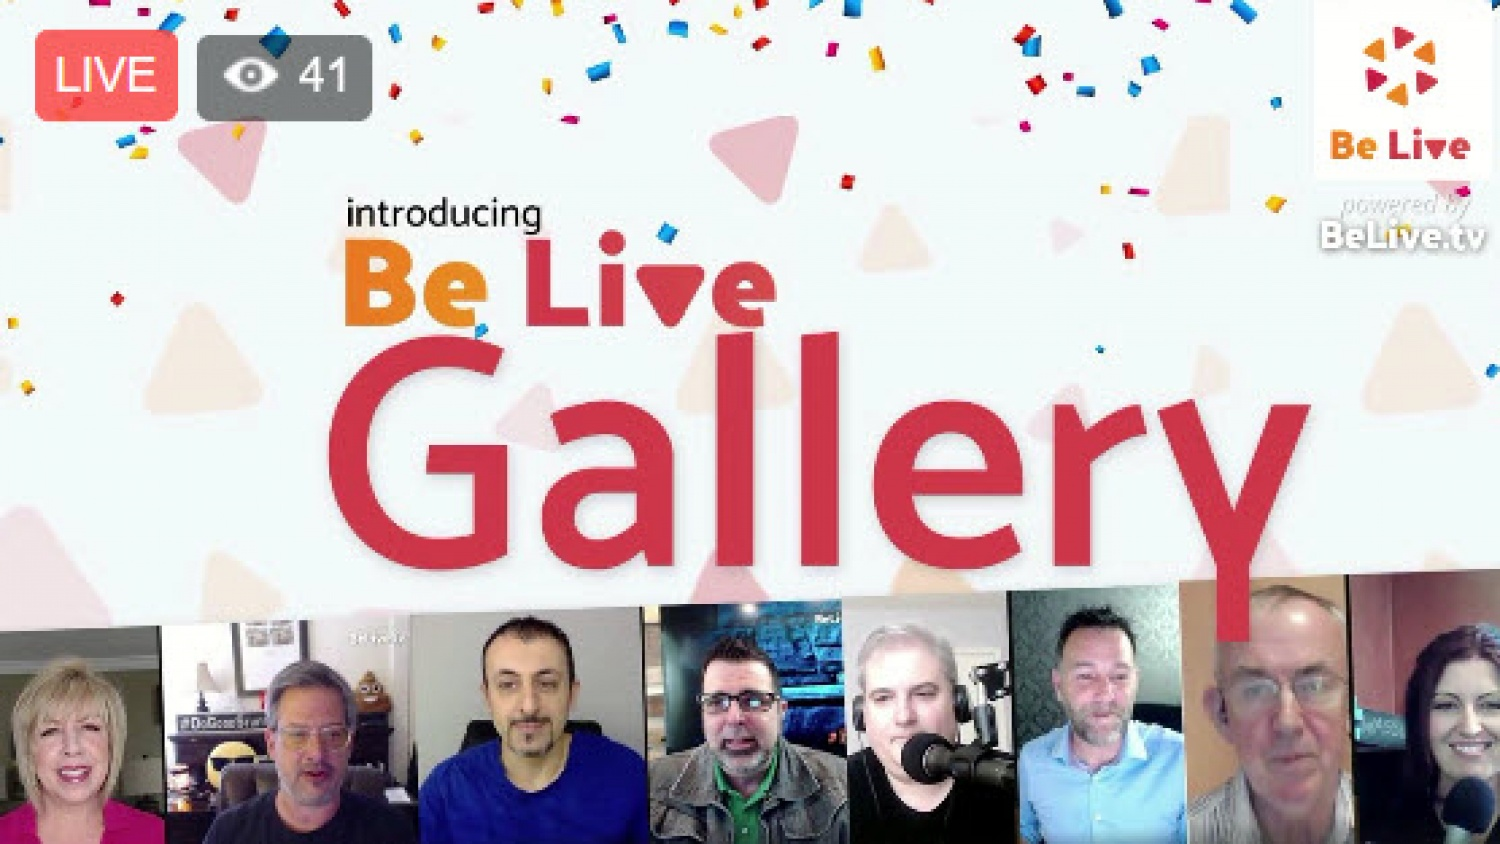 BeLive.tv to introduce a new image sharing feature